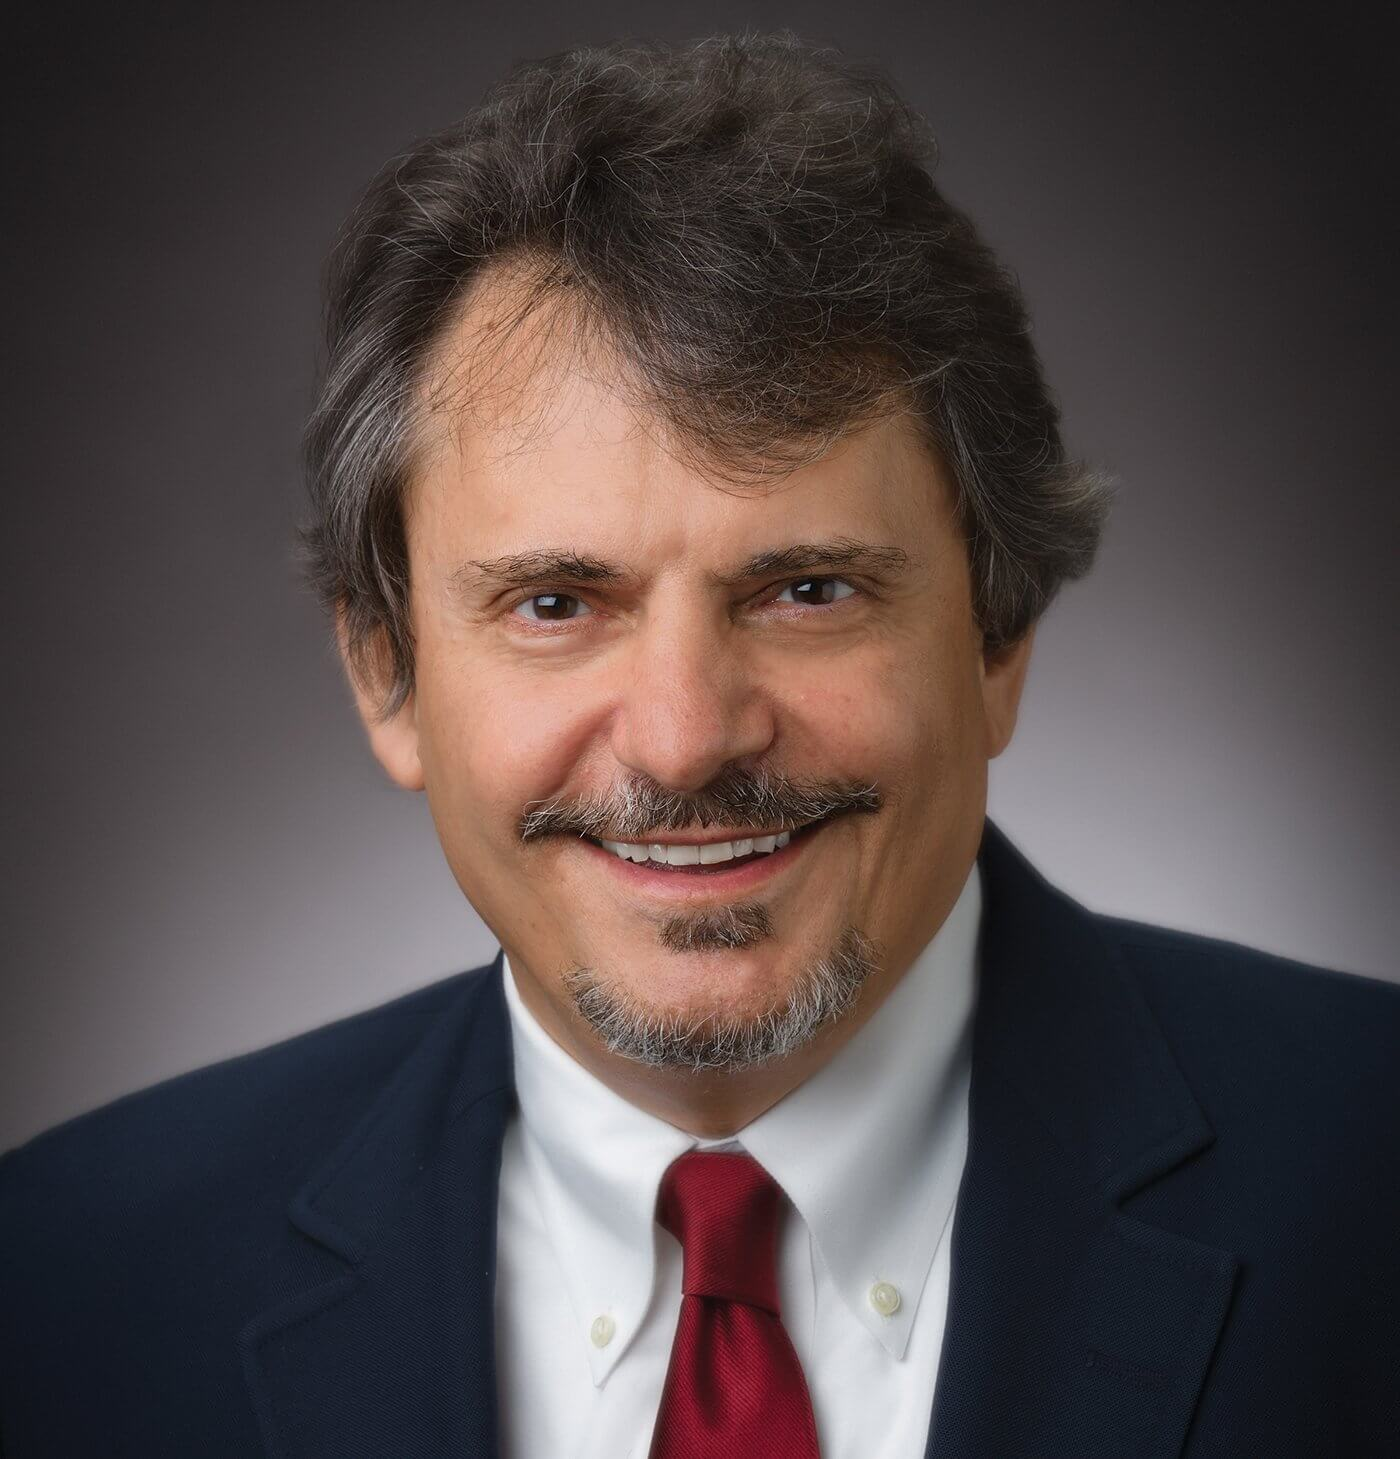 Robert Albanes, MD., , The Meninger Clinic, Houston, Texas